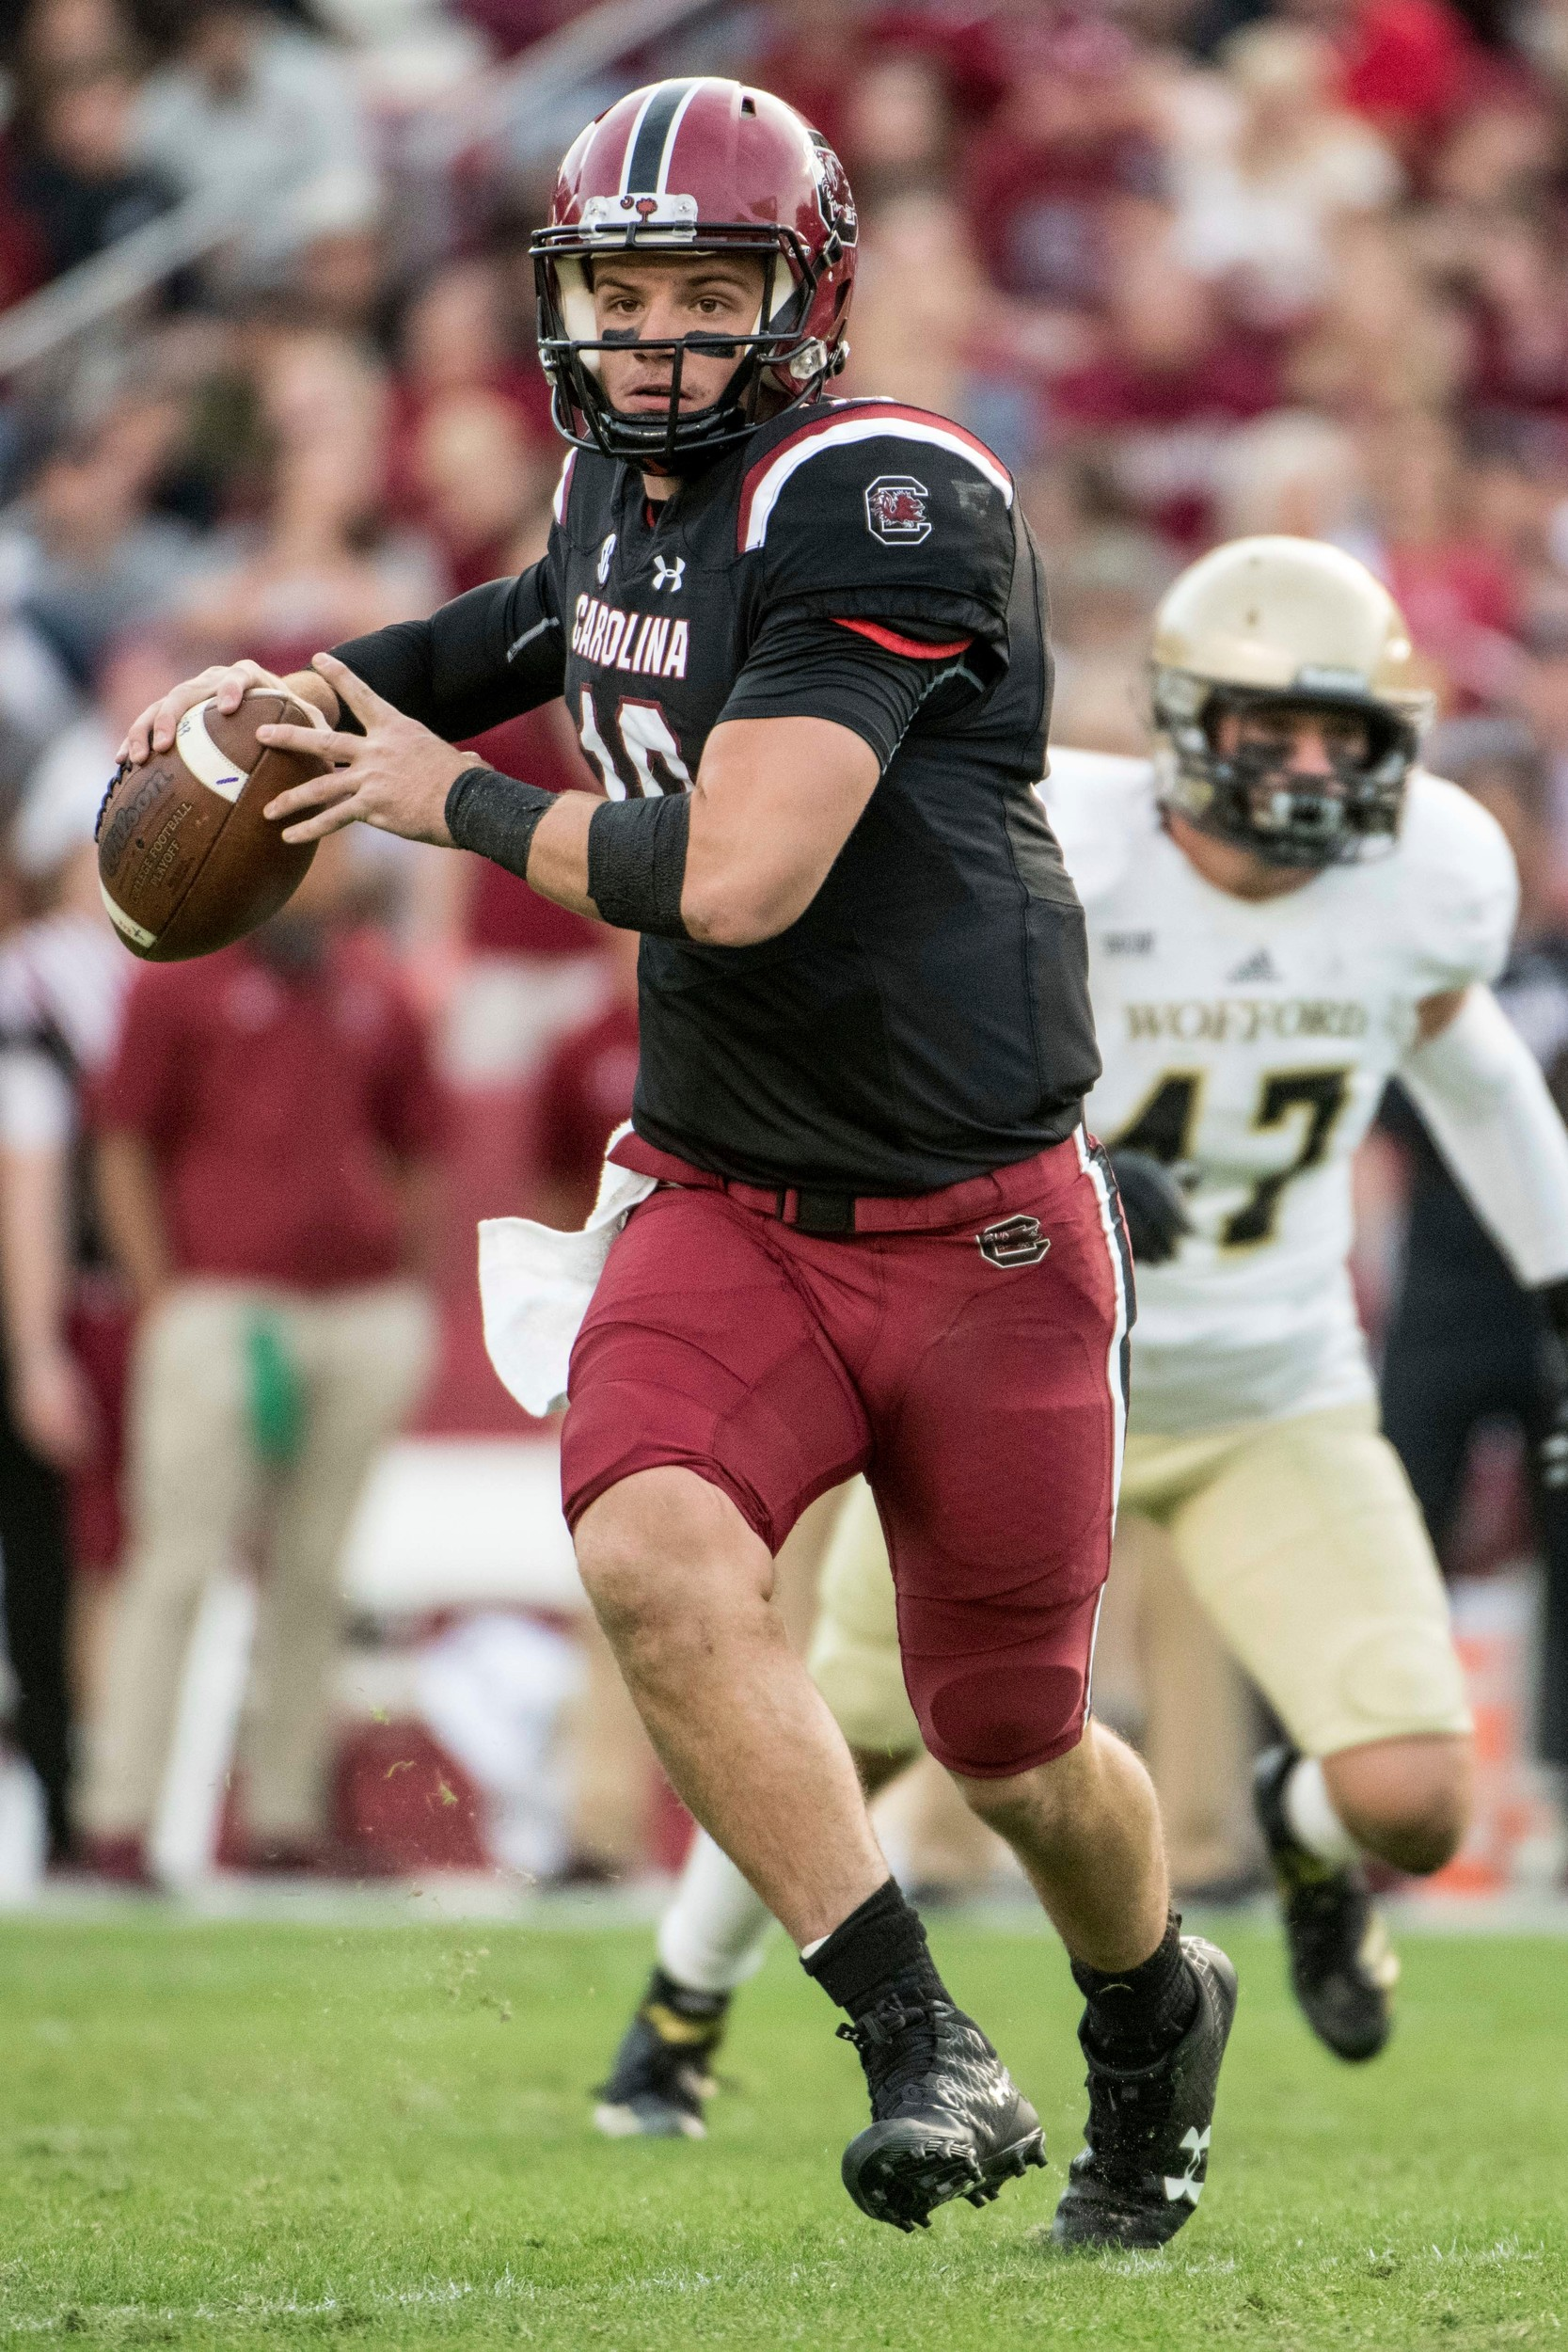 South Carolina quarterback Jake Bentley hopes to lead the Gamecocks to an upset over Clemson today in Columbia.